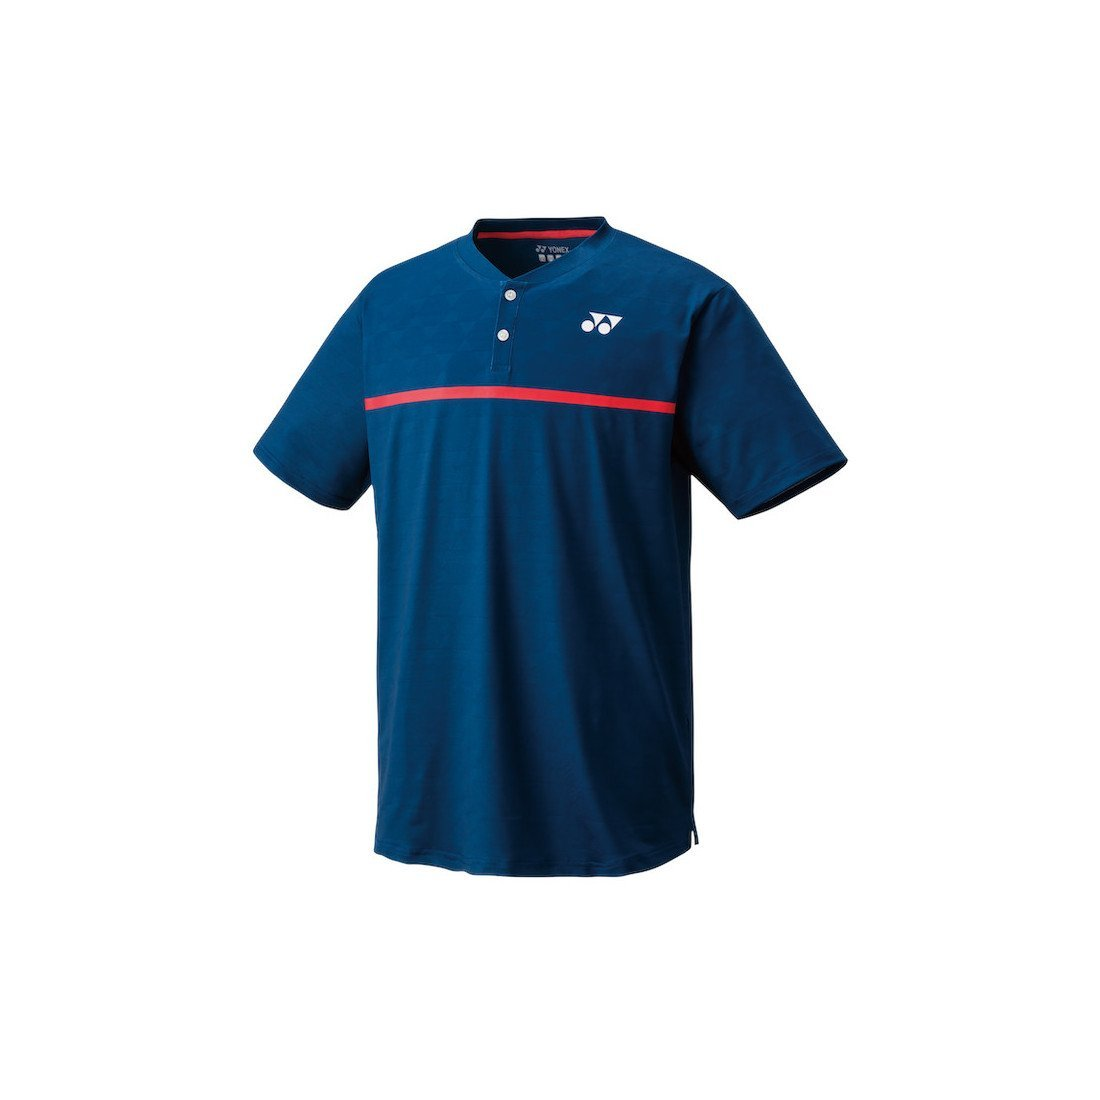 Yonex Men's Henley Tennis Shirt Slim Fit – Indigo Blue